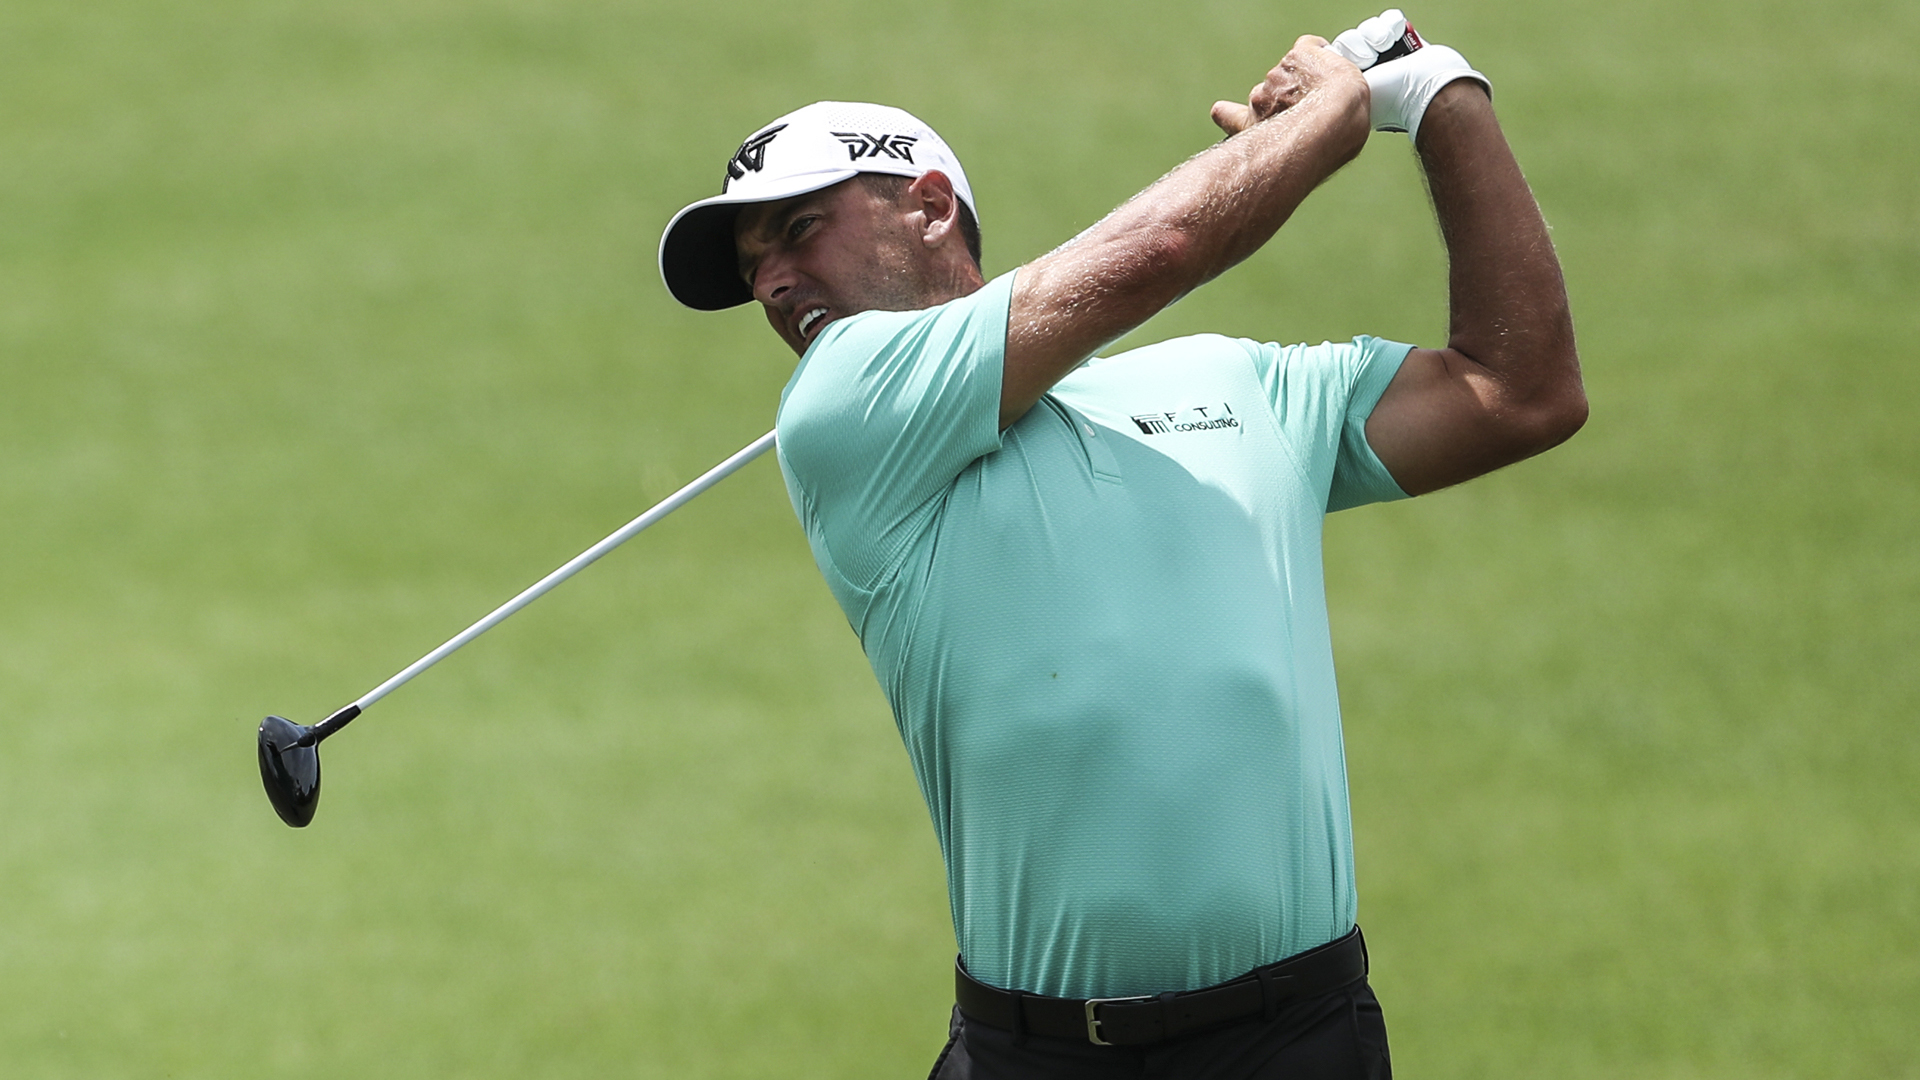 Howell grabs first-round lead at Sea Island